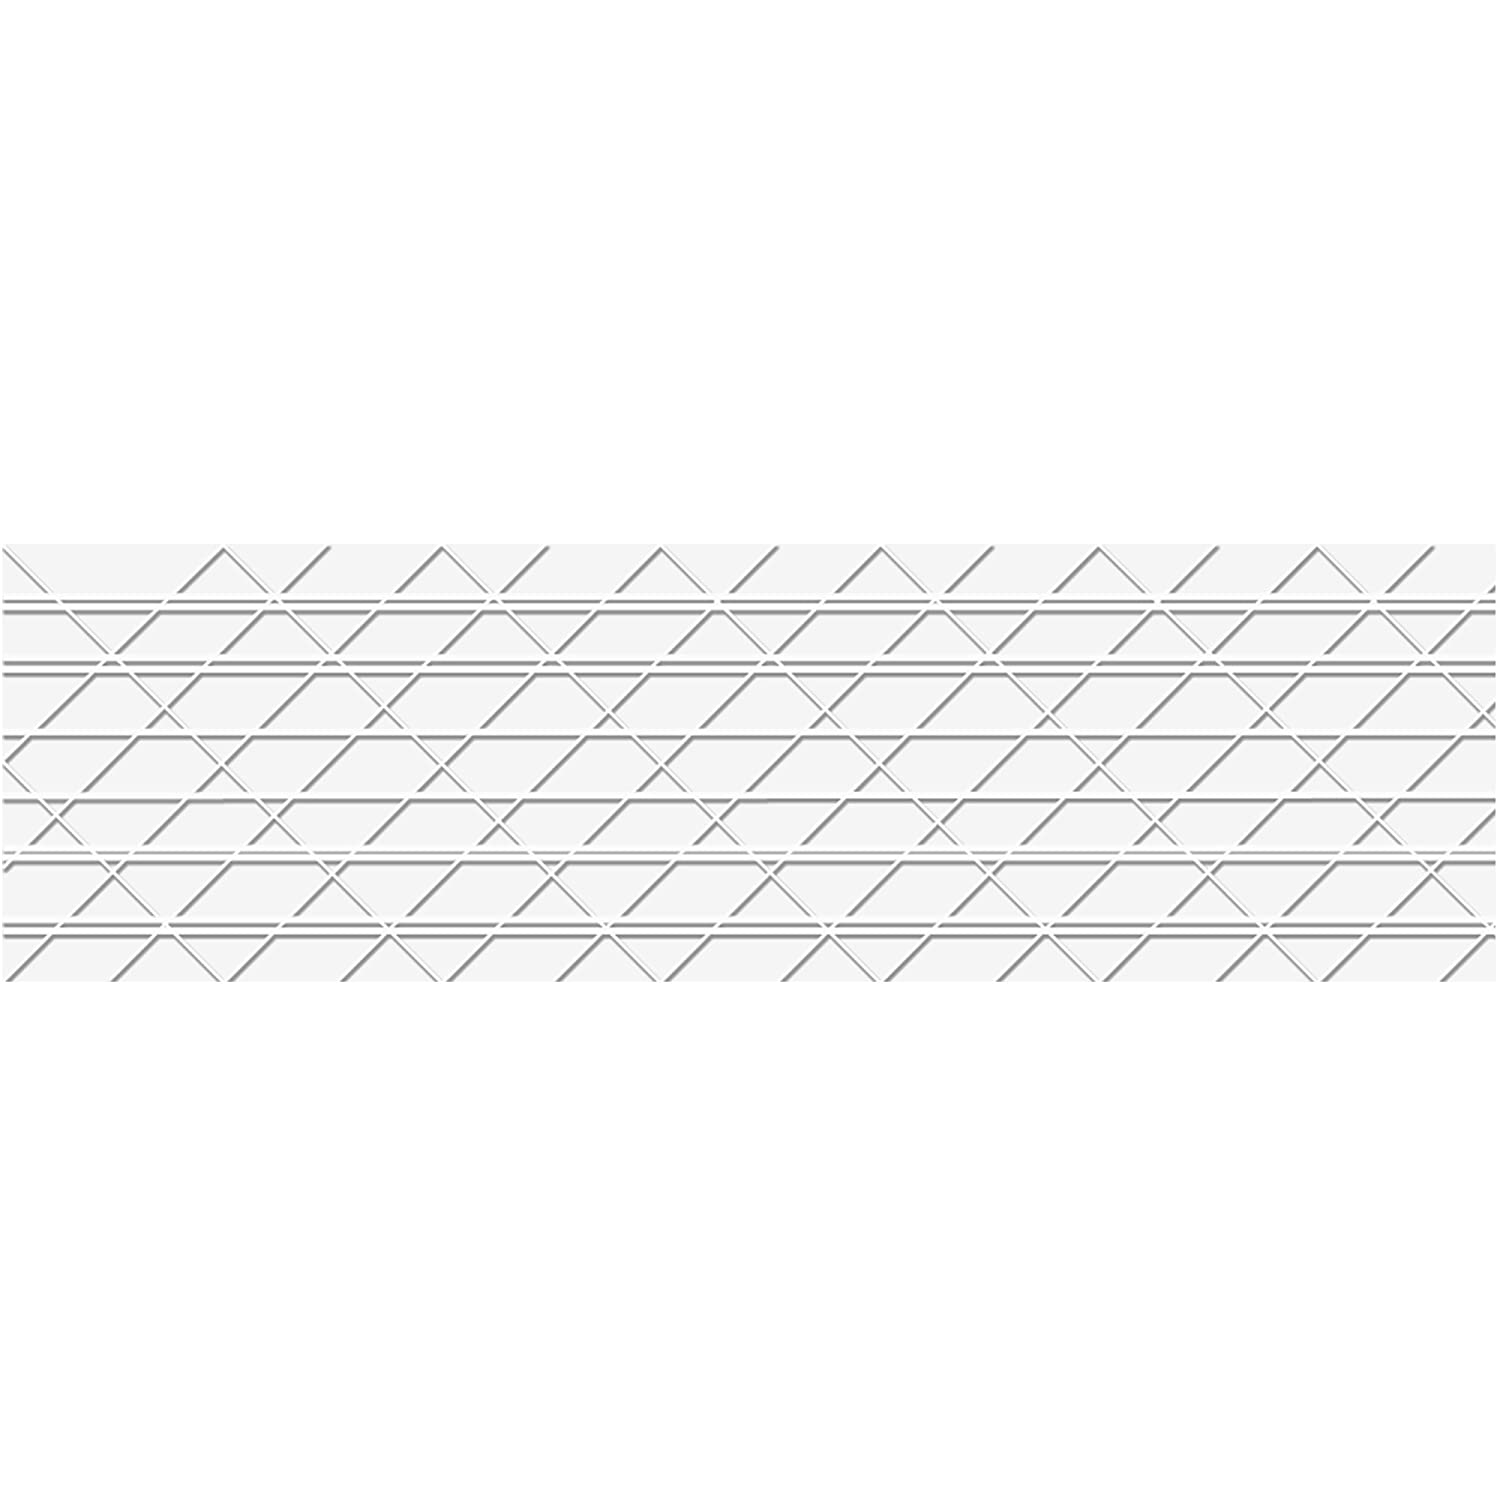 Central 270 Reinforced Tape, 3